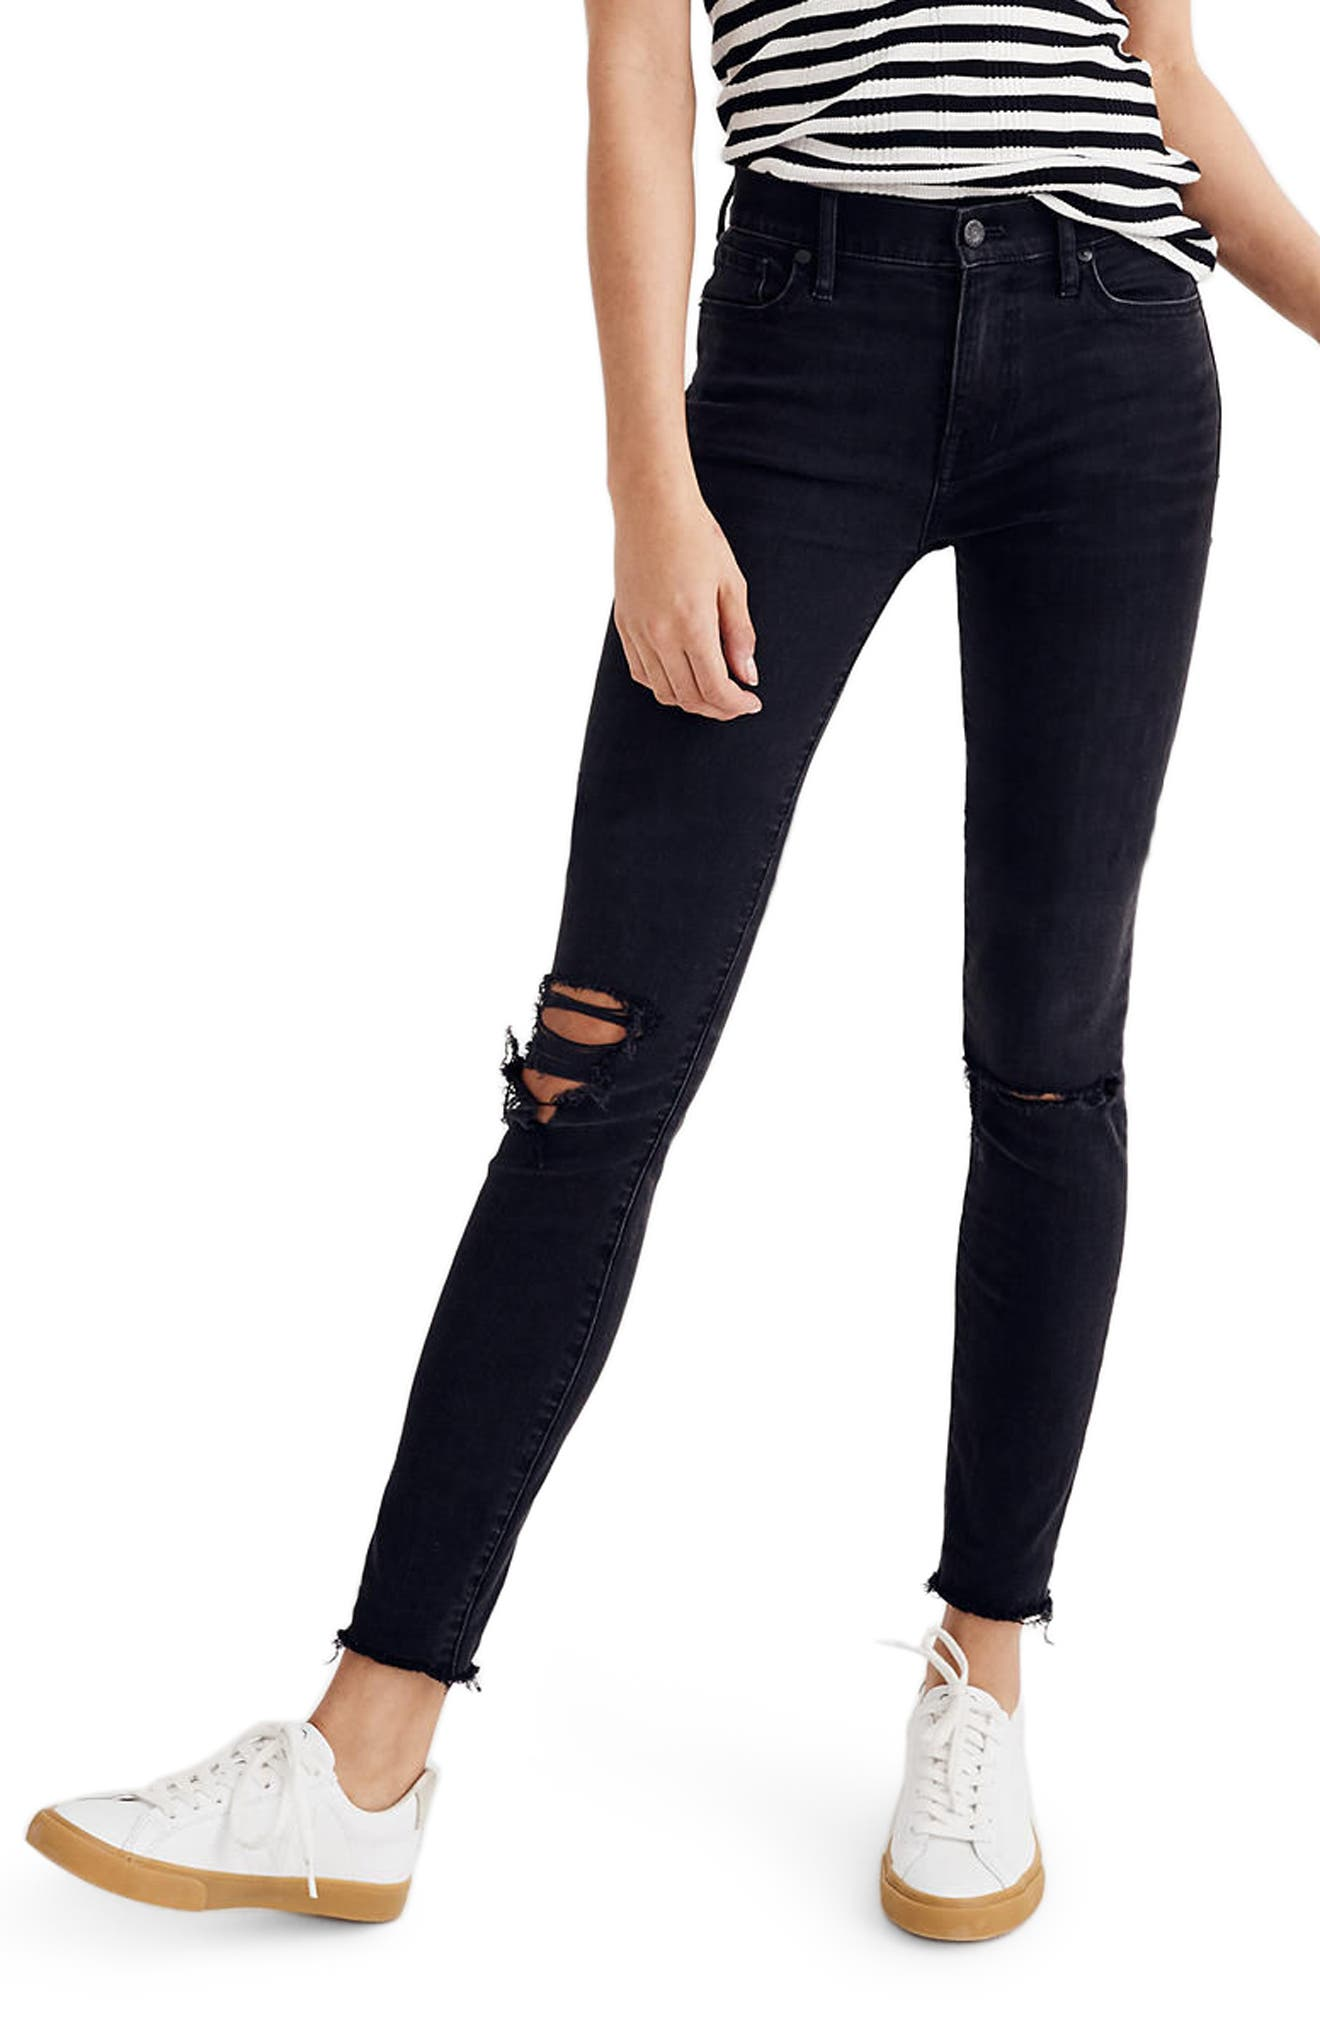 9-Inch High Waist Skinny Jeans,                         Main,                         color, 009